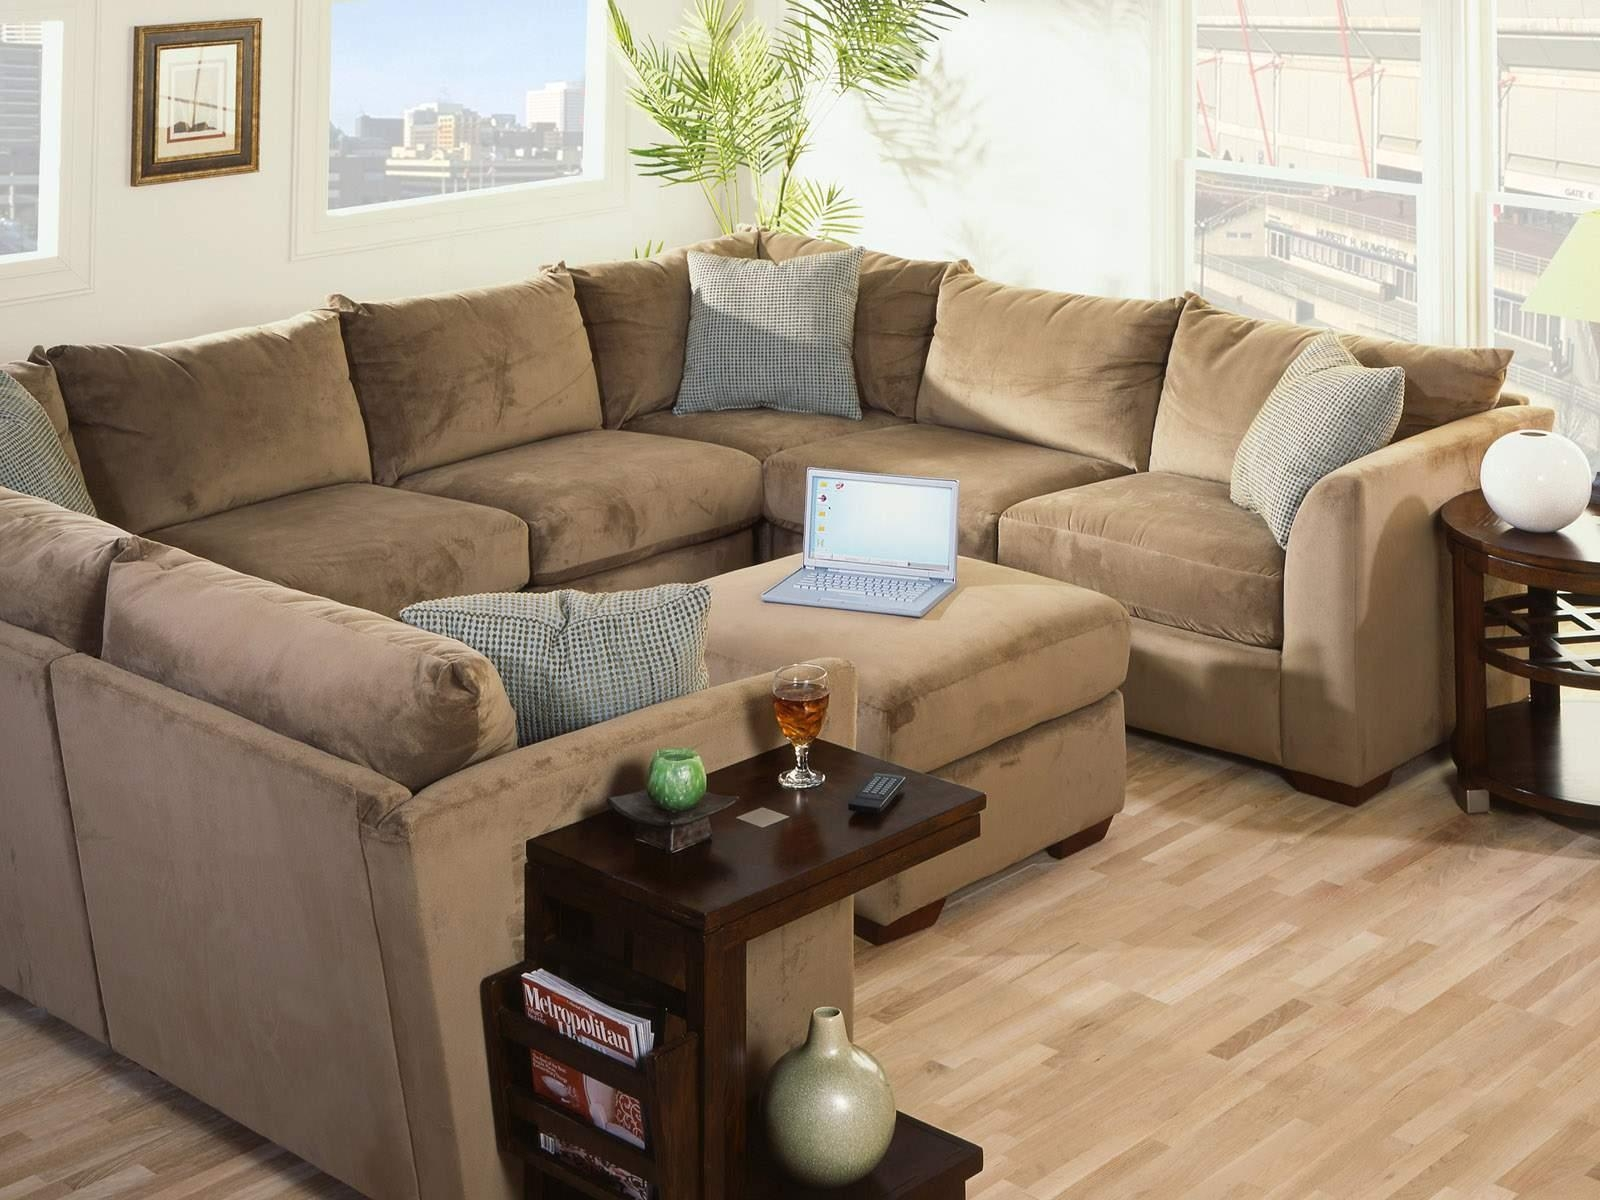 Best Quality Sectional Sofa Beds — Home Ideas Collection With Large Microfiber Sectional (Image 1 of 20)